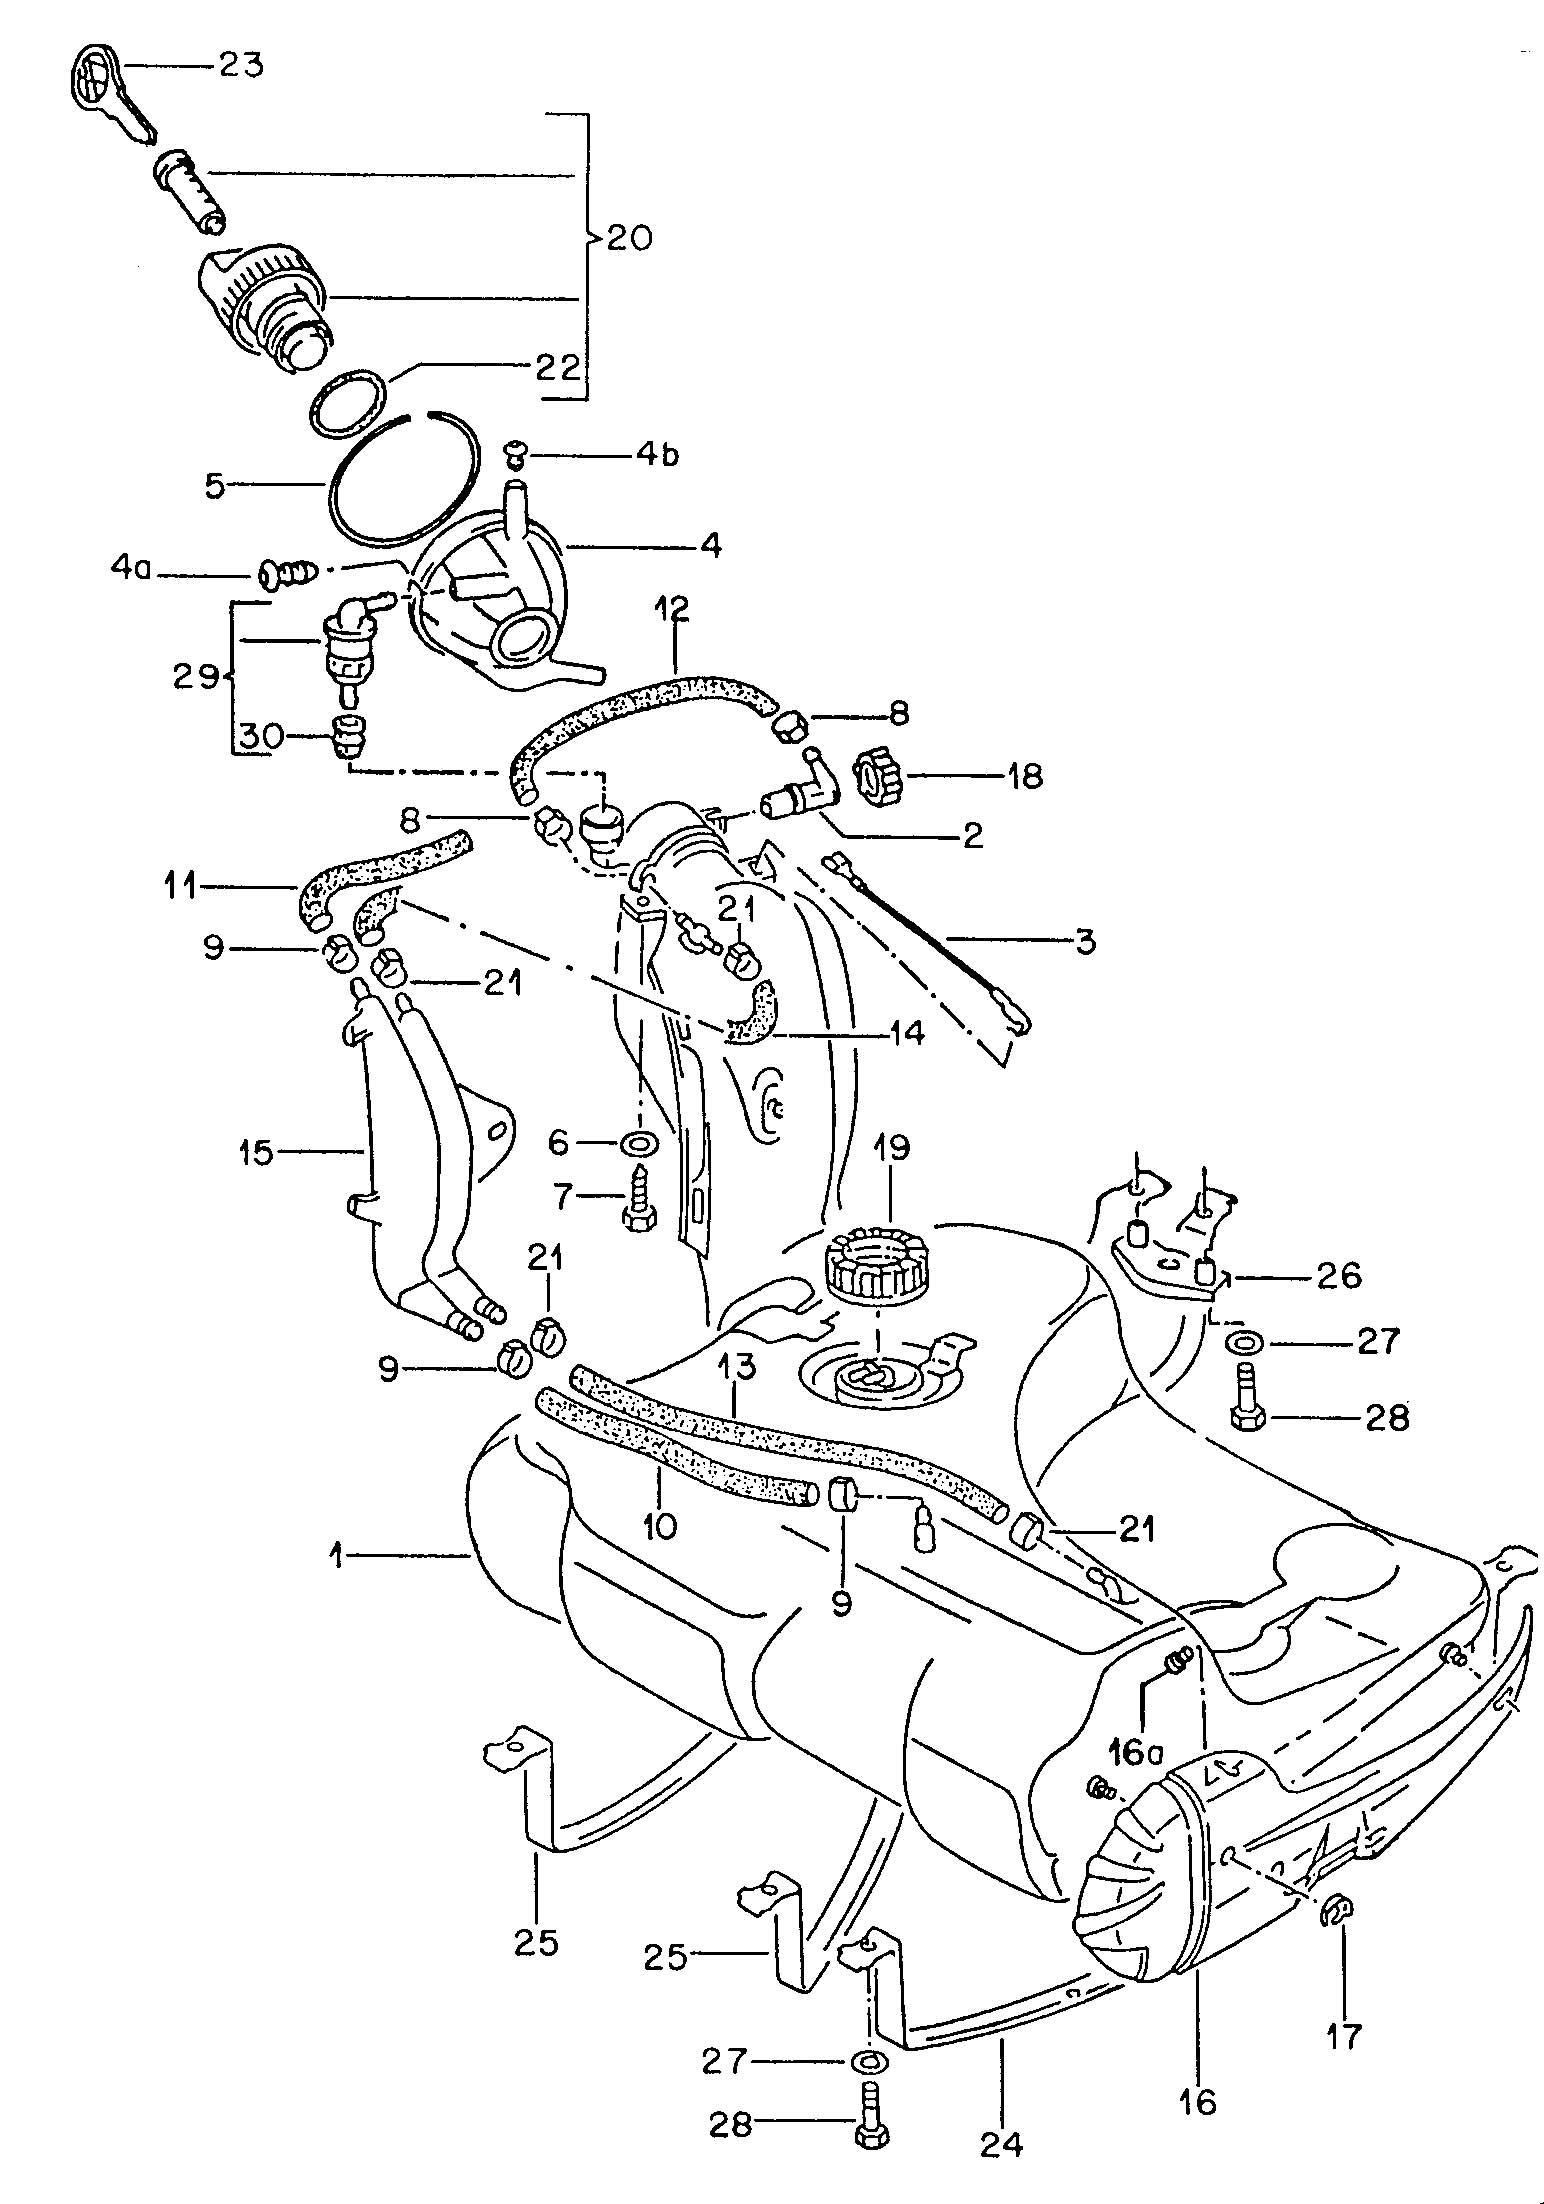 Engine wiring harness repair furthermore 05 vw jetta engines additionally ship diesel engines diagram furthermore 2000